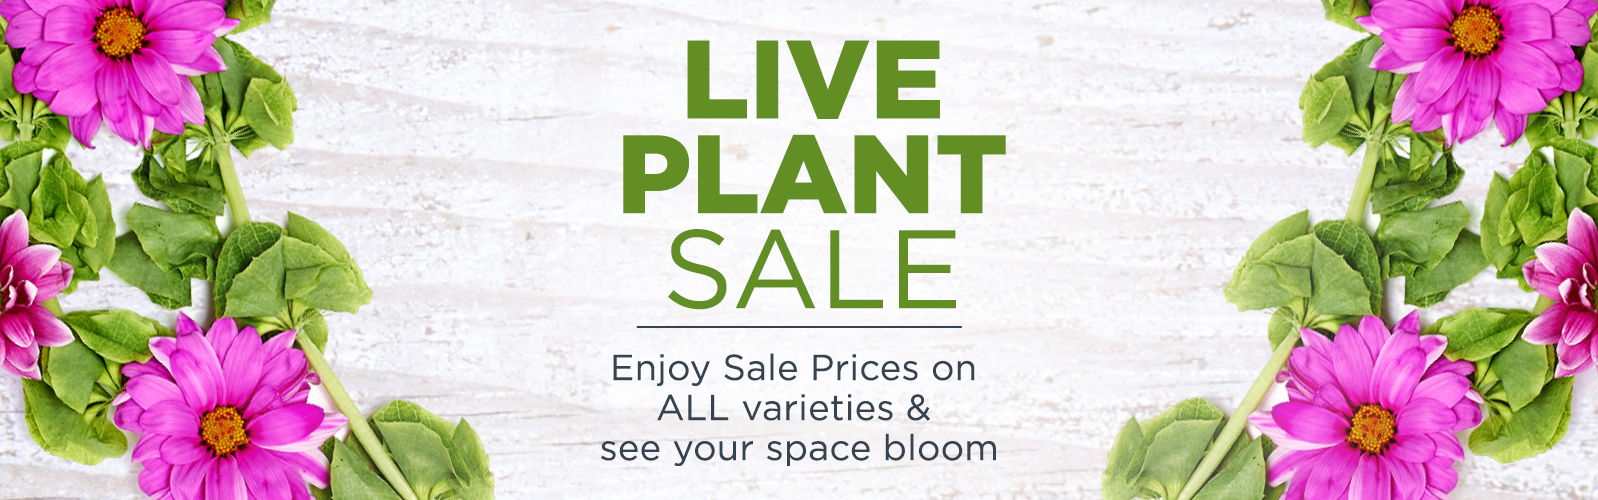 Live Plant Sale.  Enjoy Sale Prices on ALL varieties & see your space bloom.